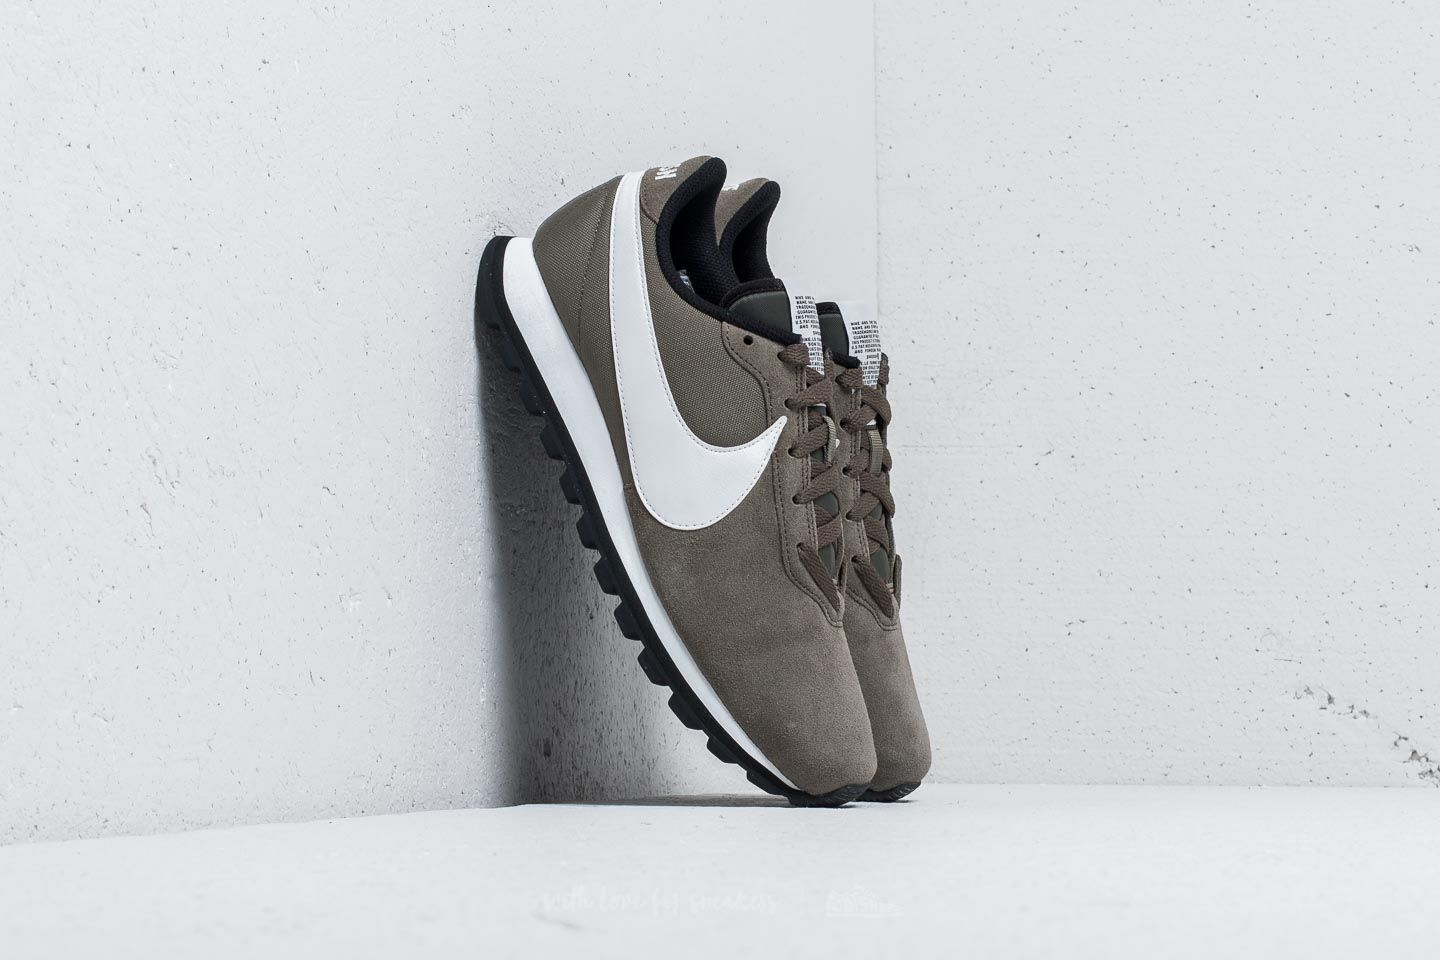 Ženski čevlji Nike Wmns Pre-Love O.X. Twilight Marsh/ Summit White